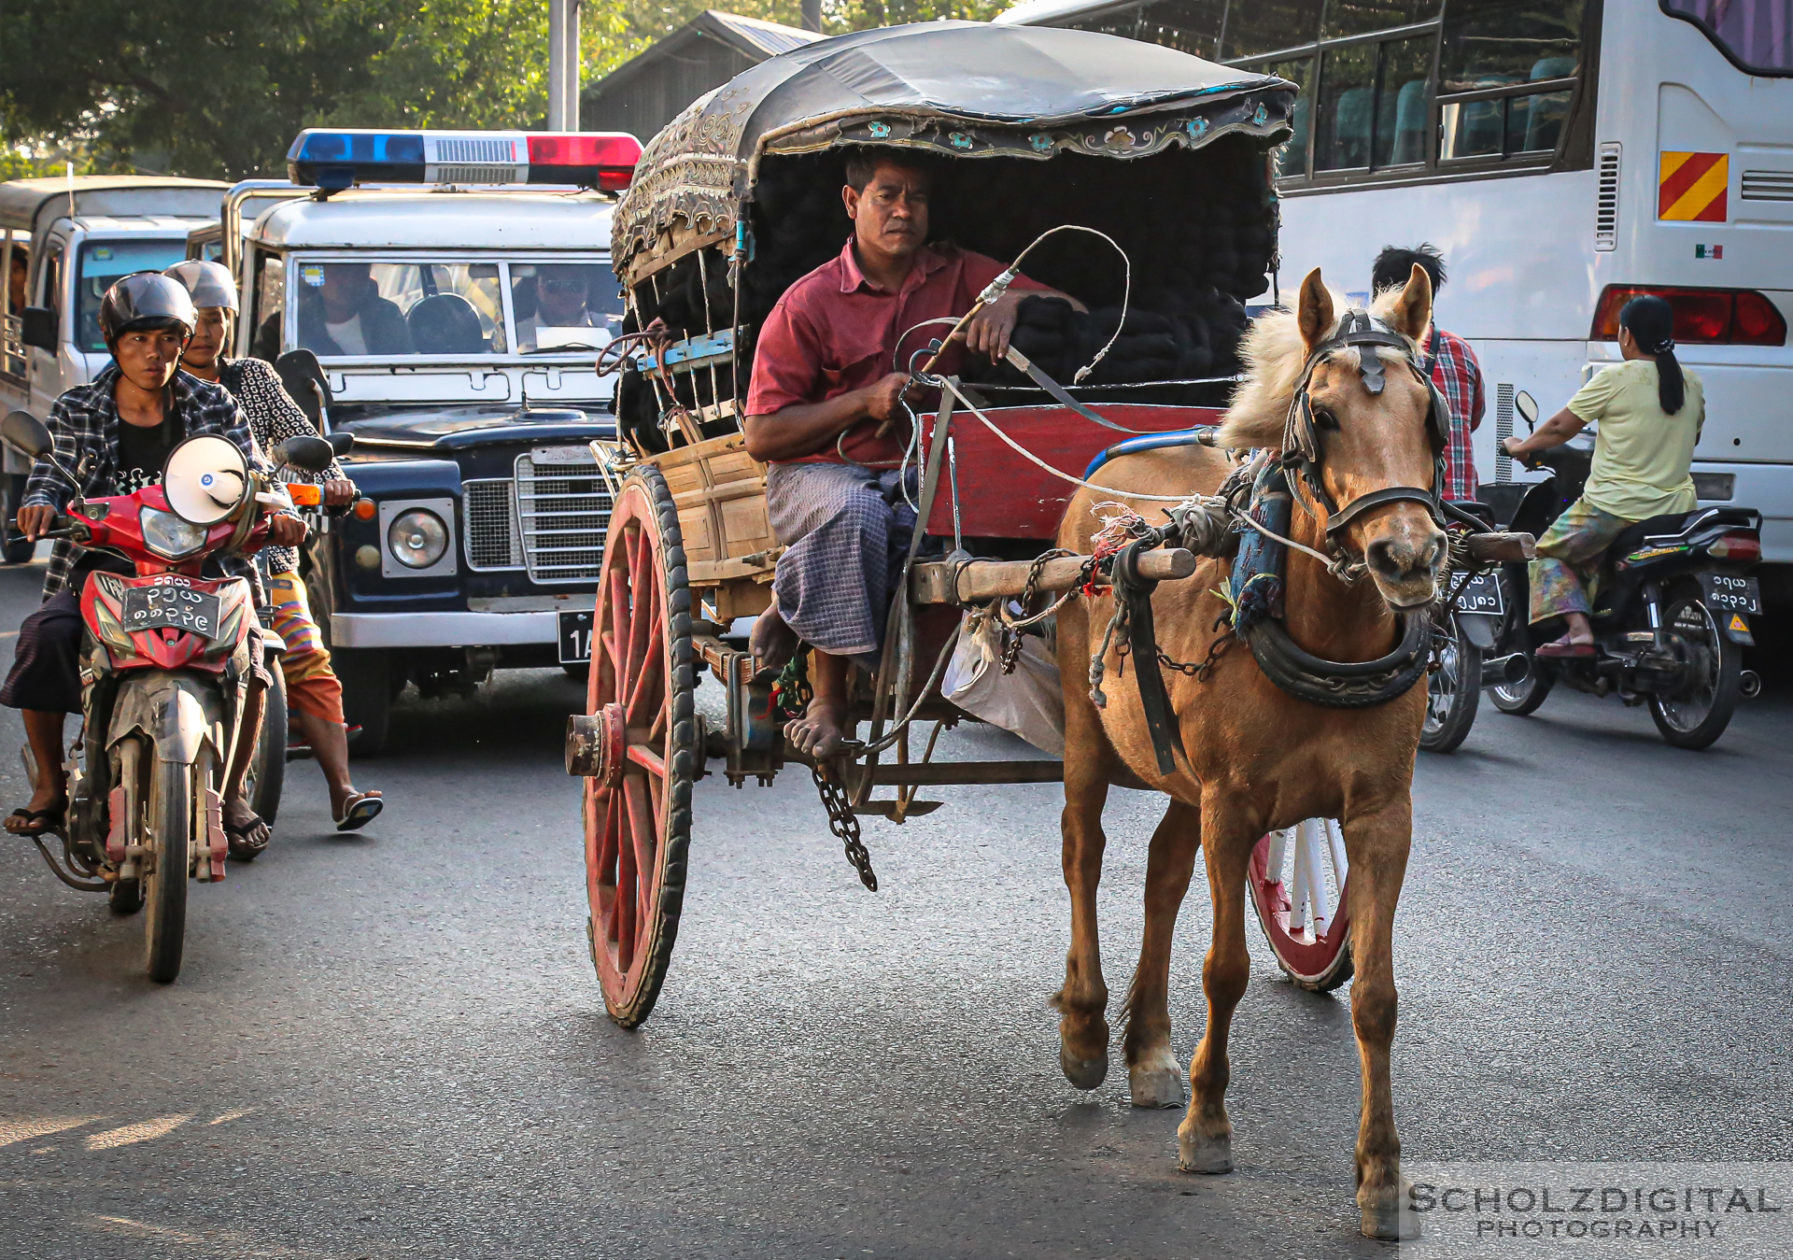 Exploring, Travelling, Myanmar, Mandalay, Birma, Burma, Streetphotography, Travelling, Wanderlust, Southeastasia, asia, travel, globetrotter, travelphotography